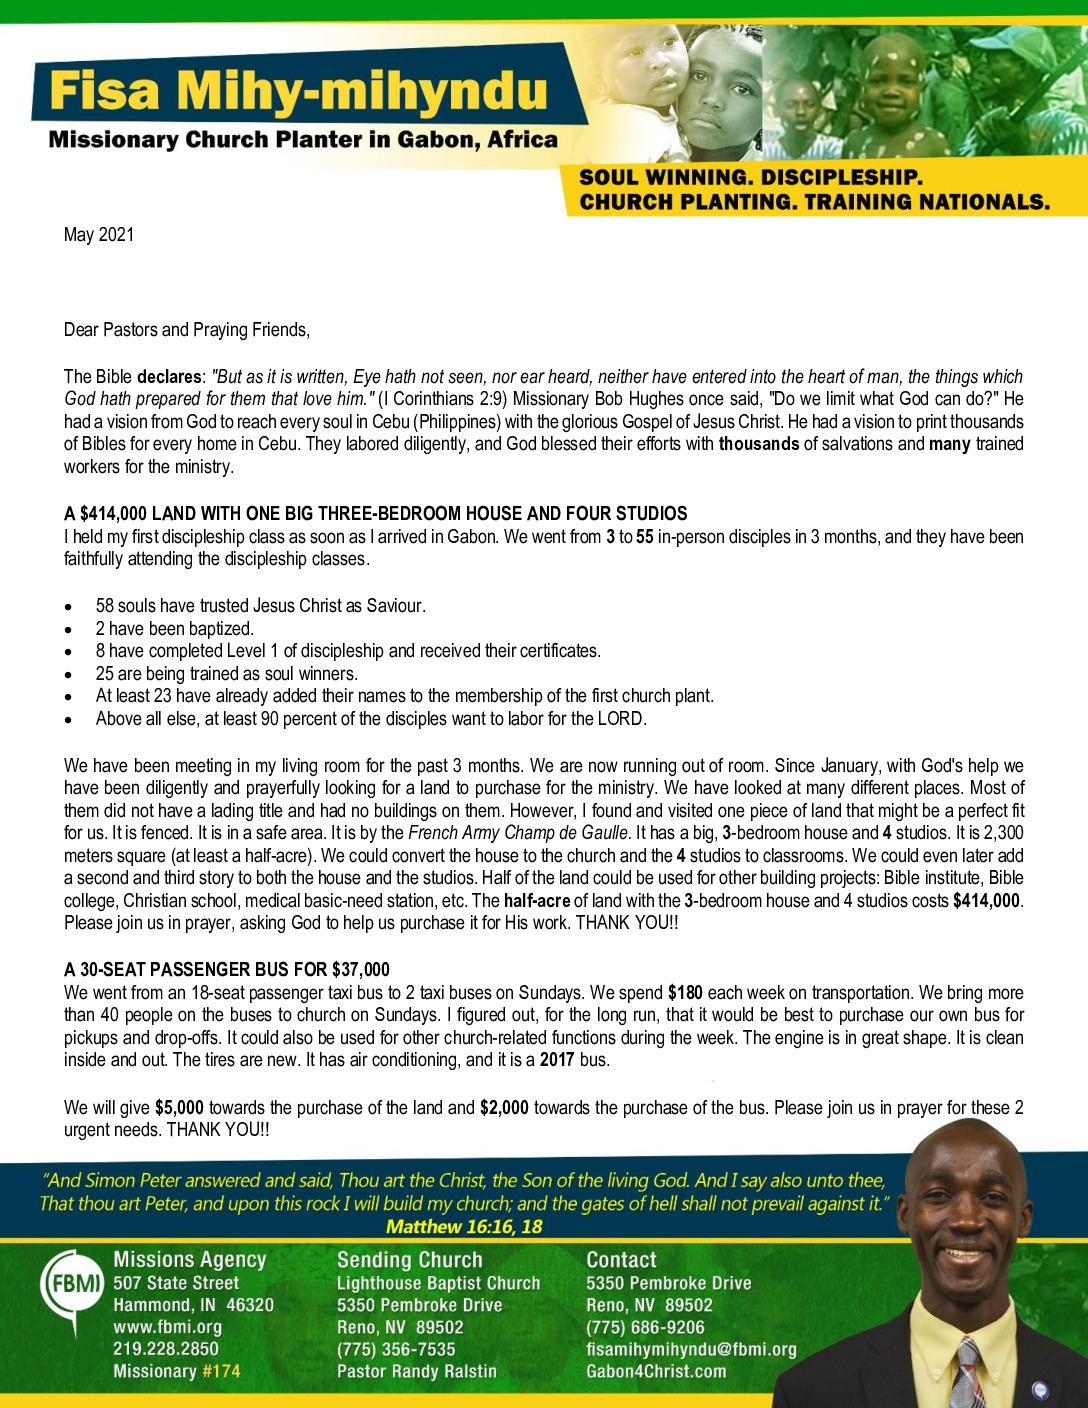 thumbnail of Fisa Mihy-mihyndu May 2021 Prayer Letter – Special Needs